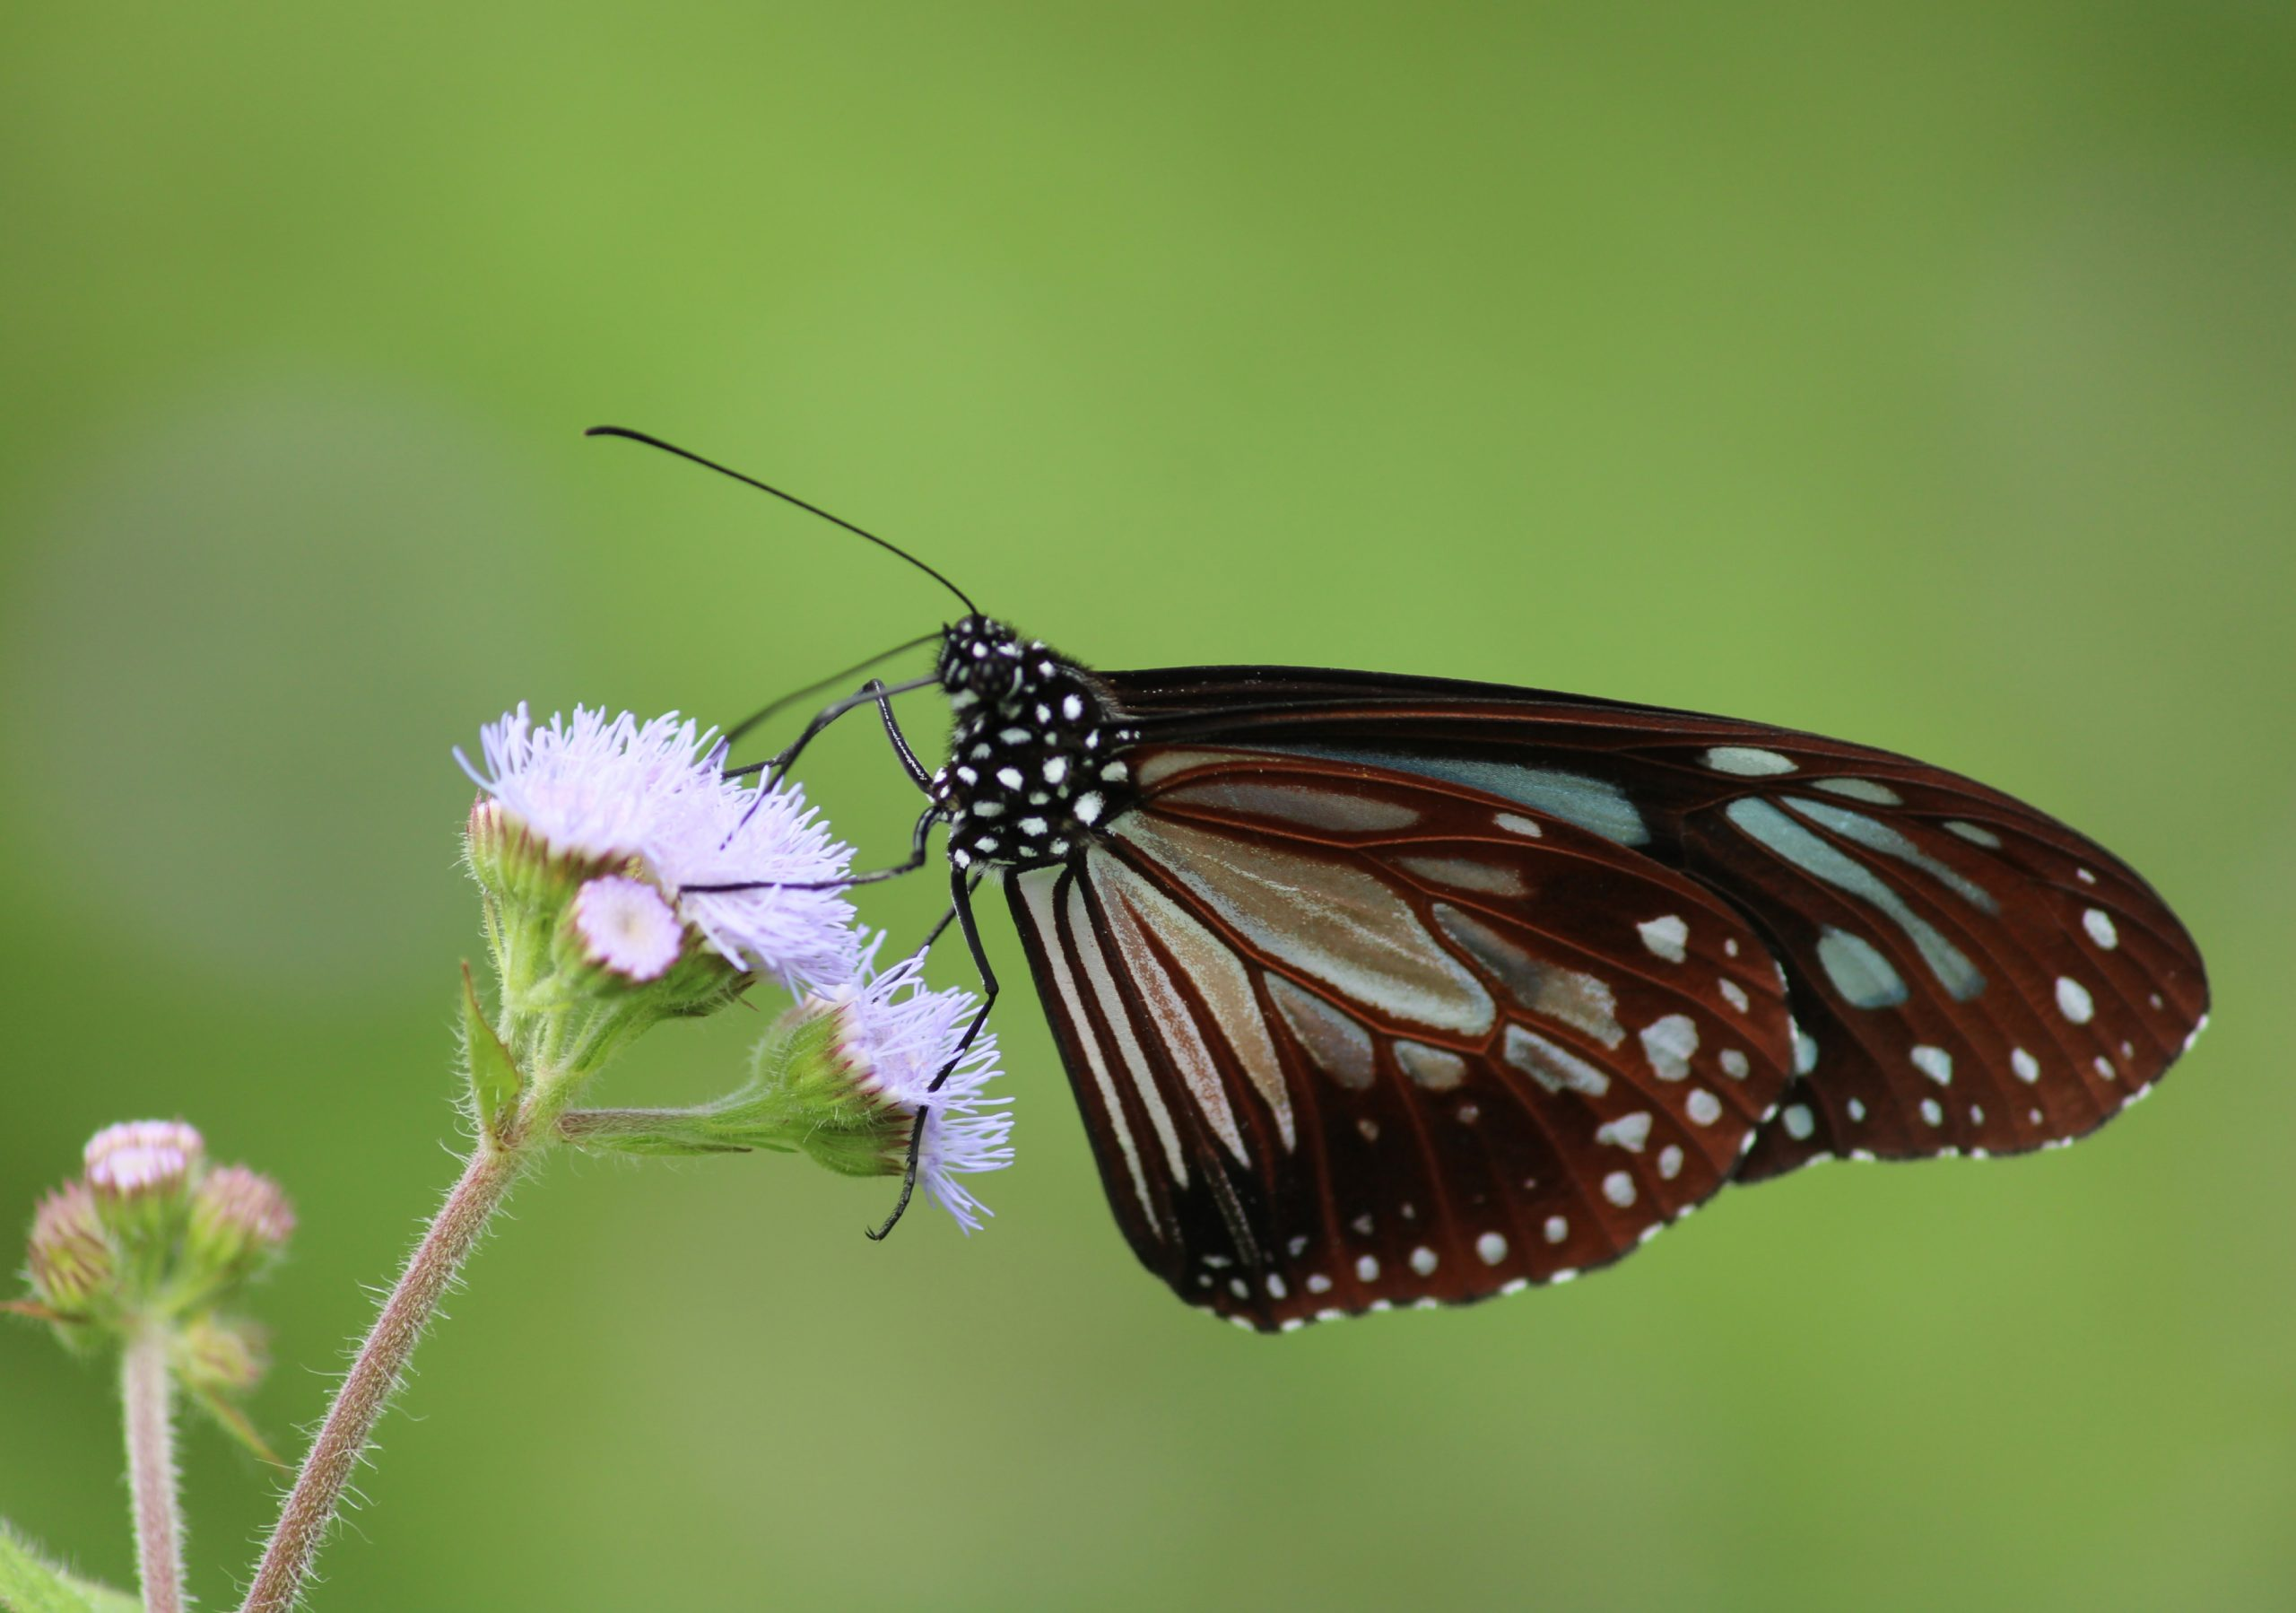 Butterfly in the Flower on Focus